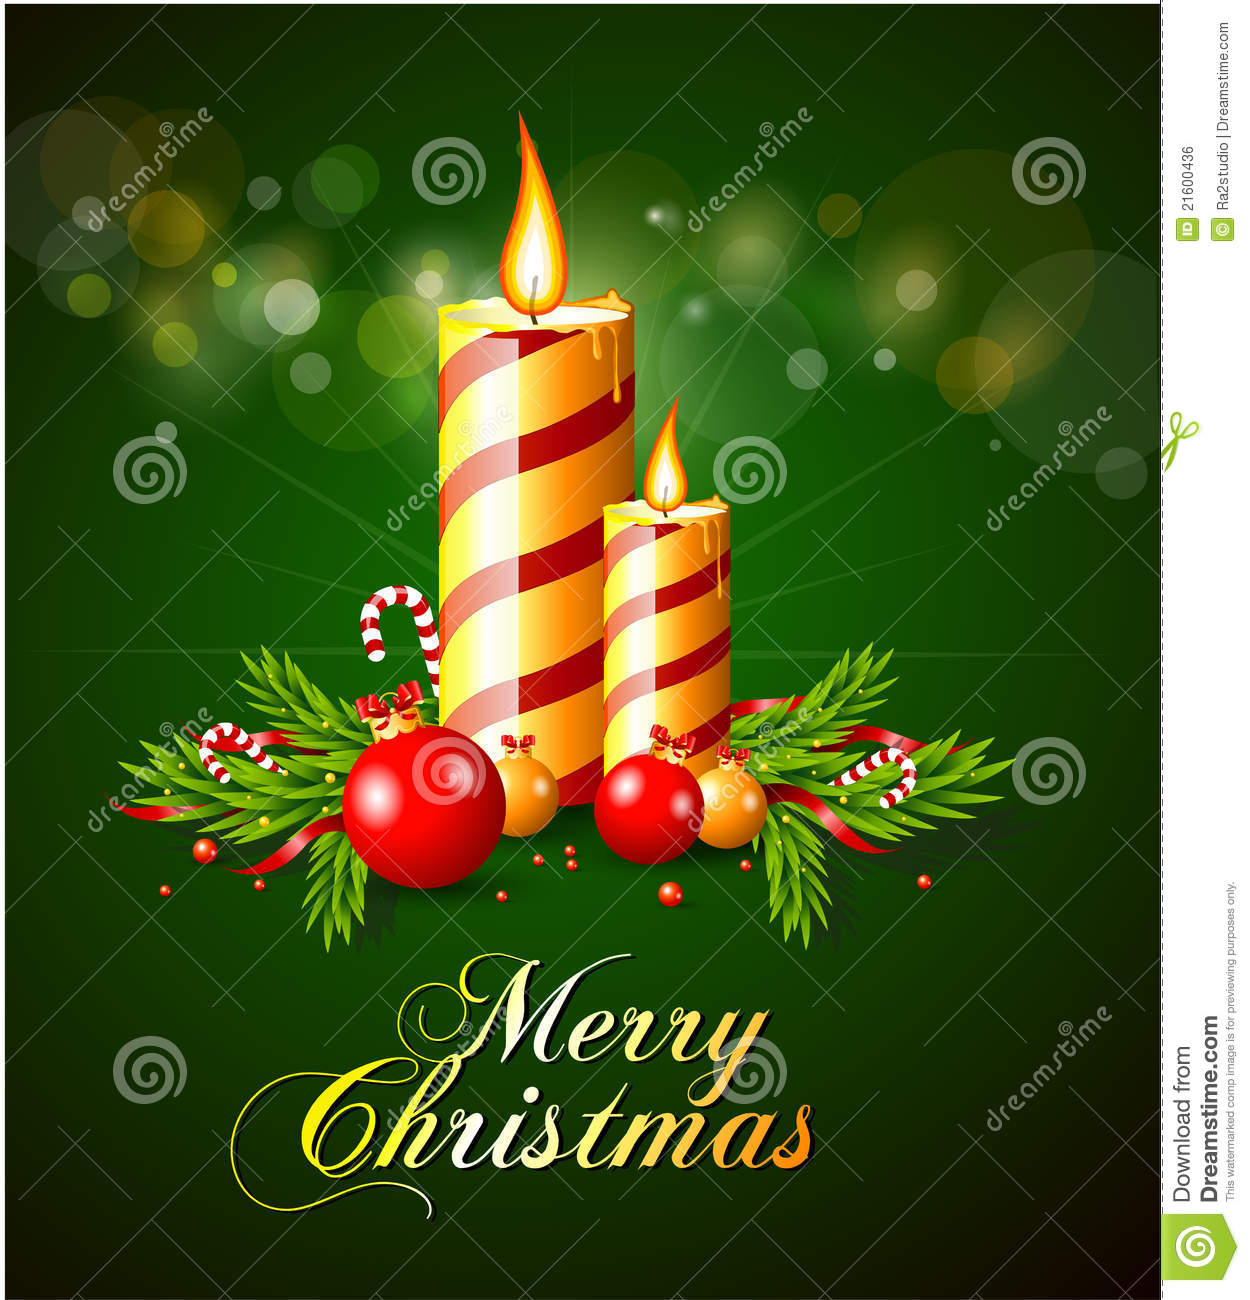 Merry christmas greeting card with candles stock vector